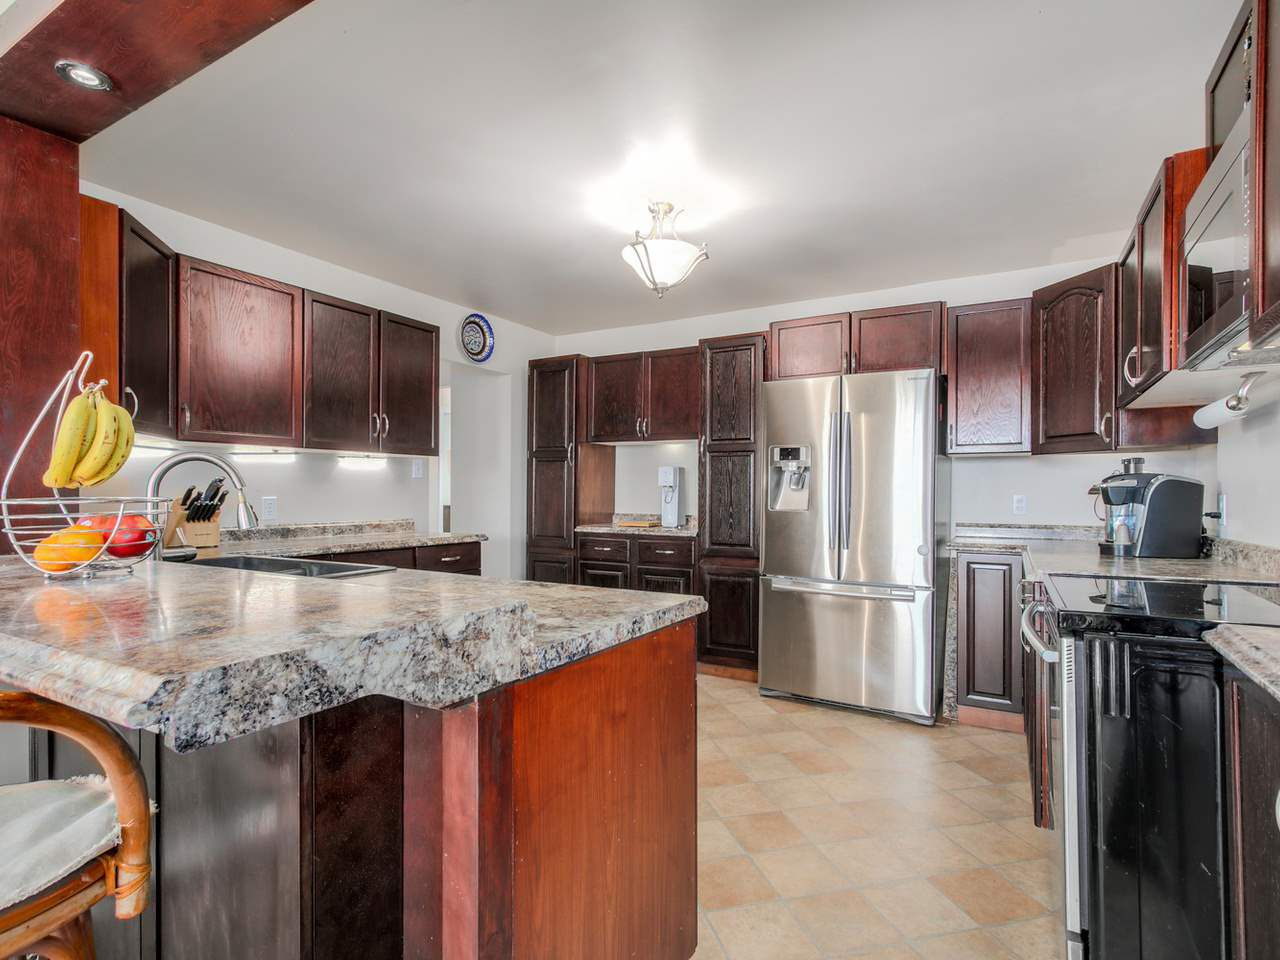 Photo 8: Photos: 449 E 5TH Street in North Vancouver: Lower Lonsdale House for sale : MLS®# R2056647